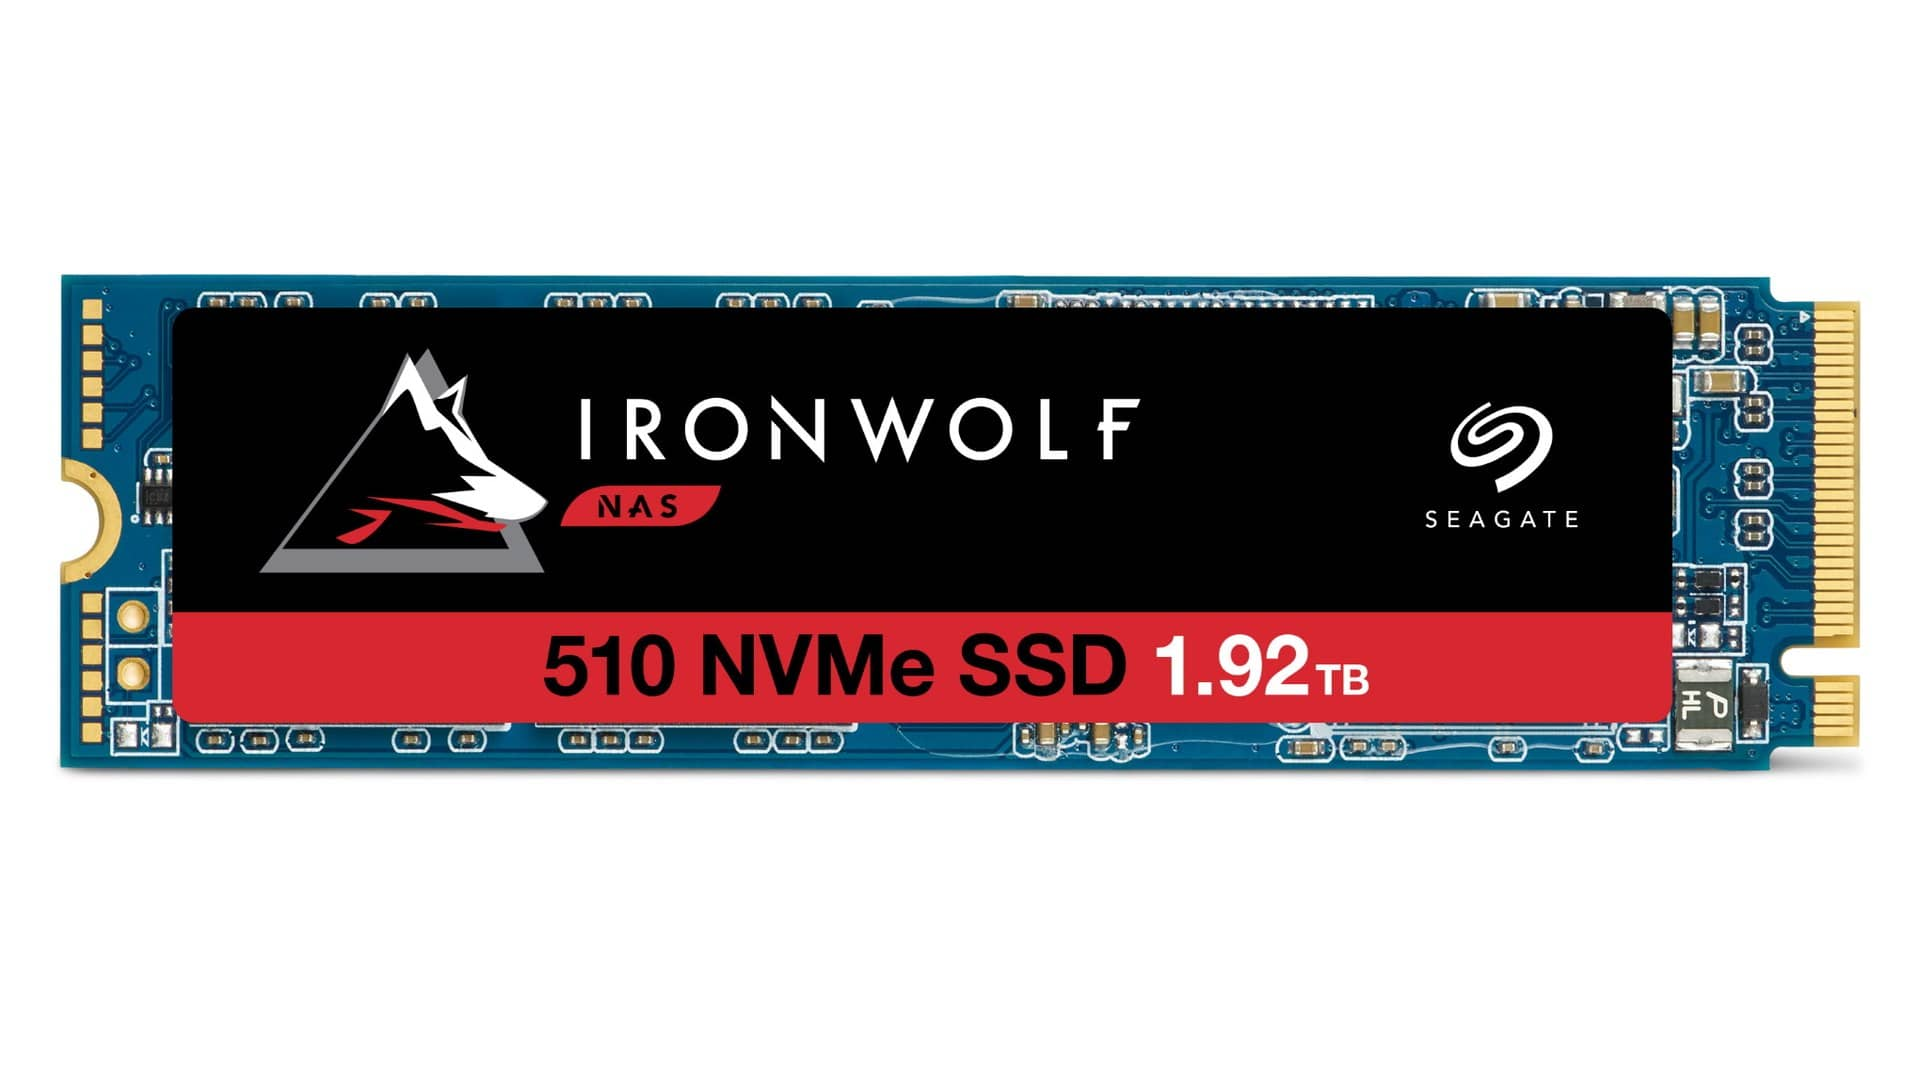 Seagate Ironwolf 510 (Fotogalerie)